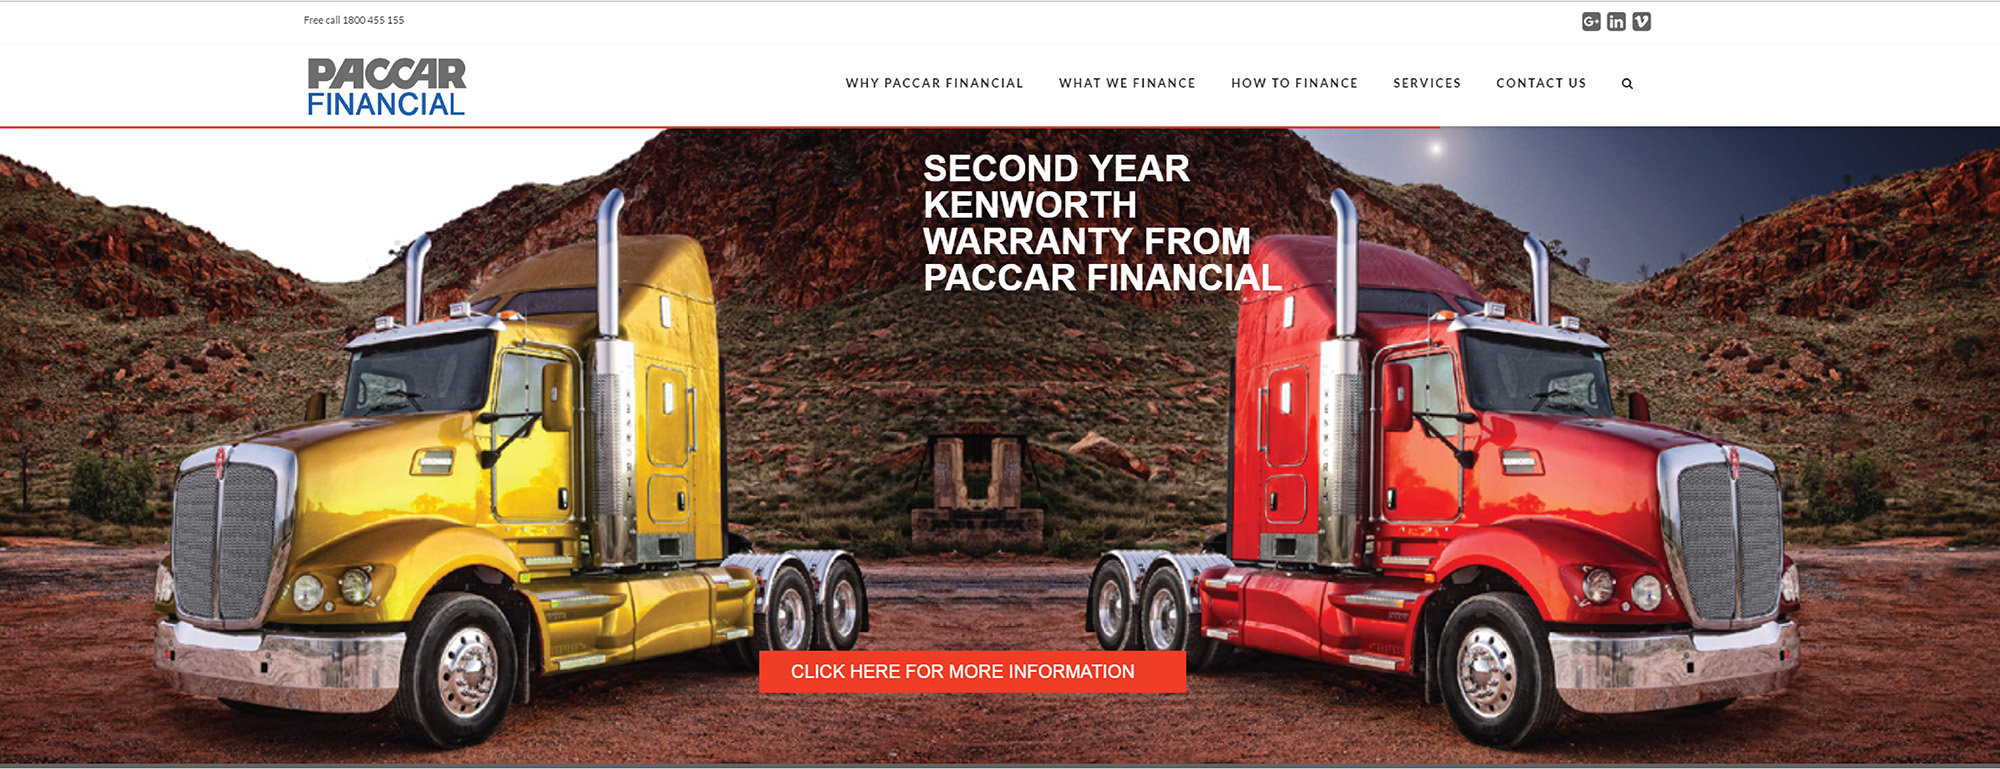 Paccar financial launches new website